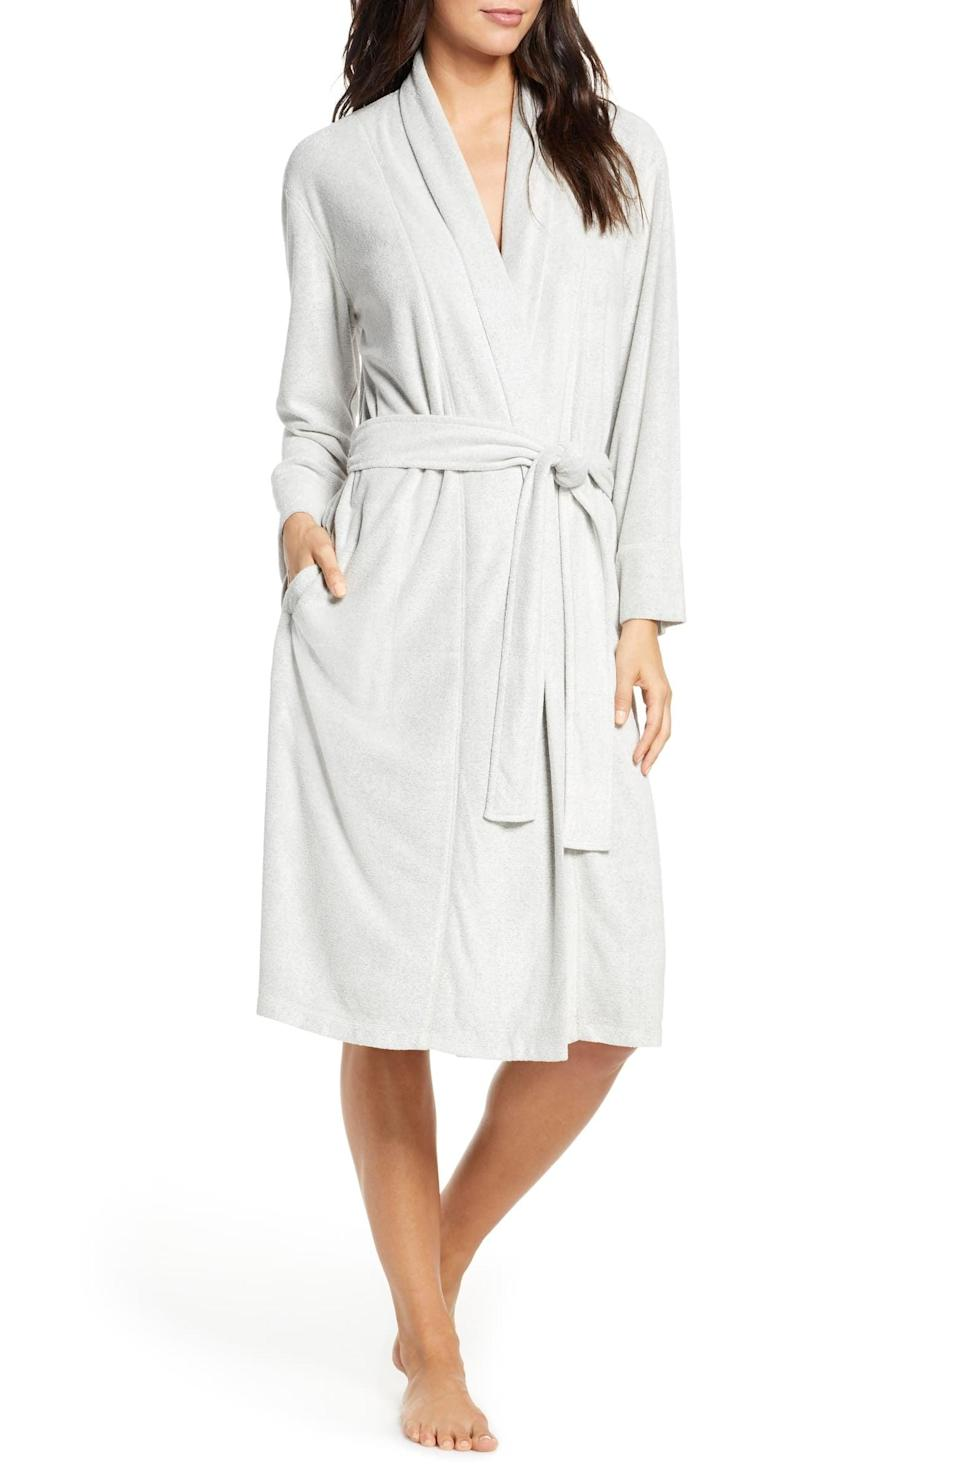 <p>This <span>Natori Sierra Brushed Terry Robe</span> ($78) comes in so many cute pastel shades.</p>